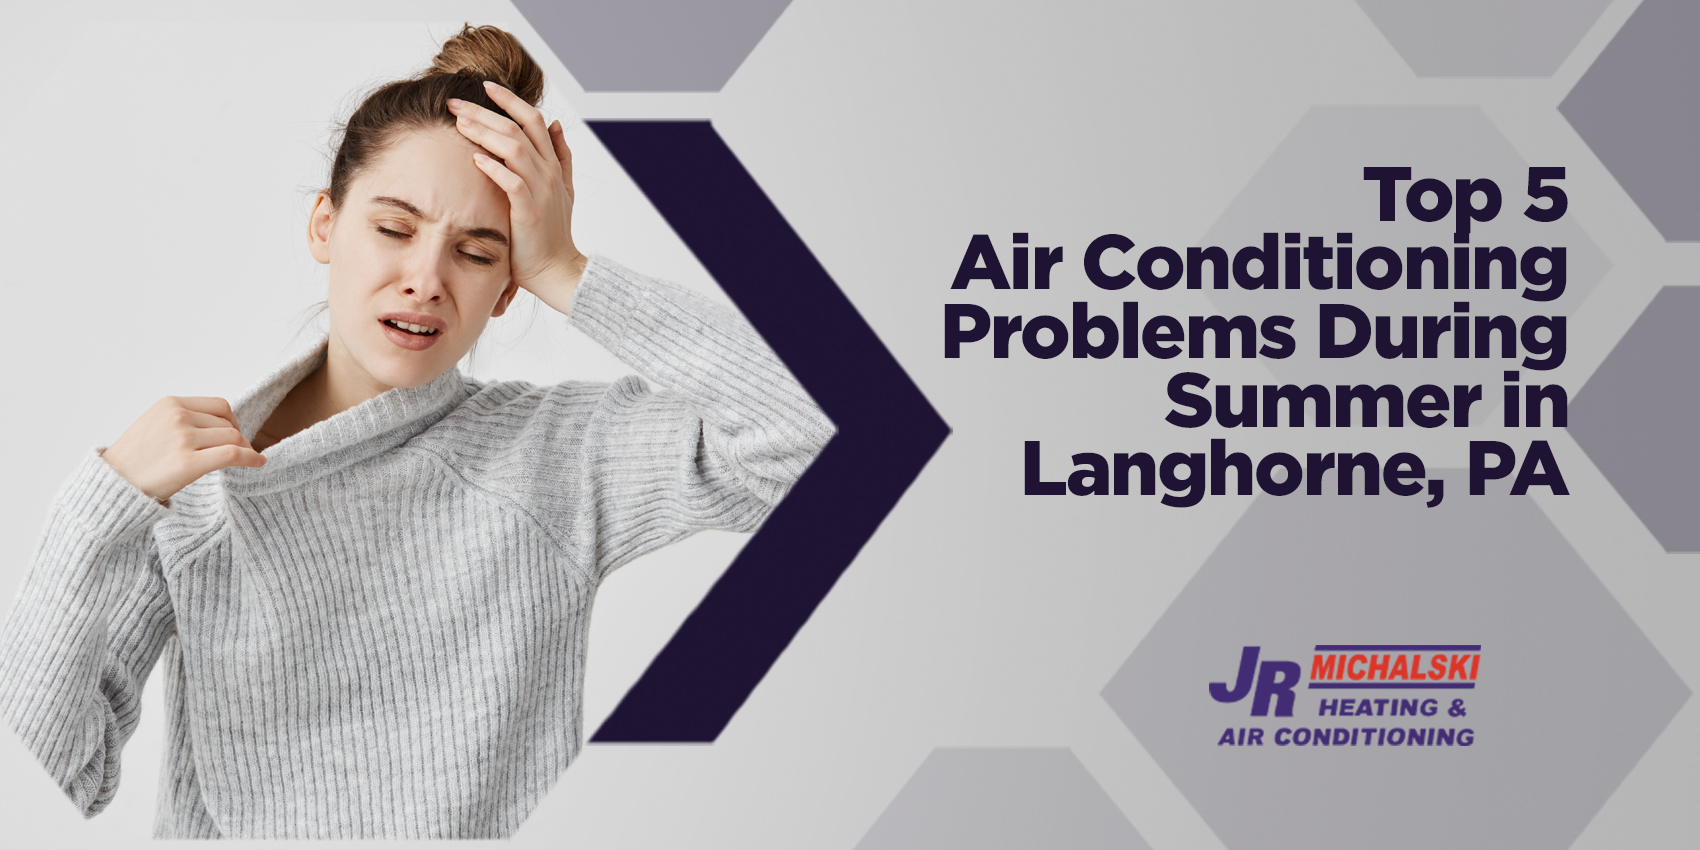 Top 5 Air Conditioning Problems During Summer in Langhorne, PA